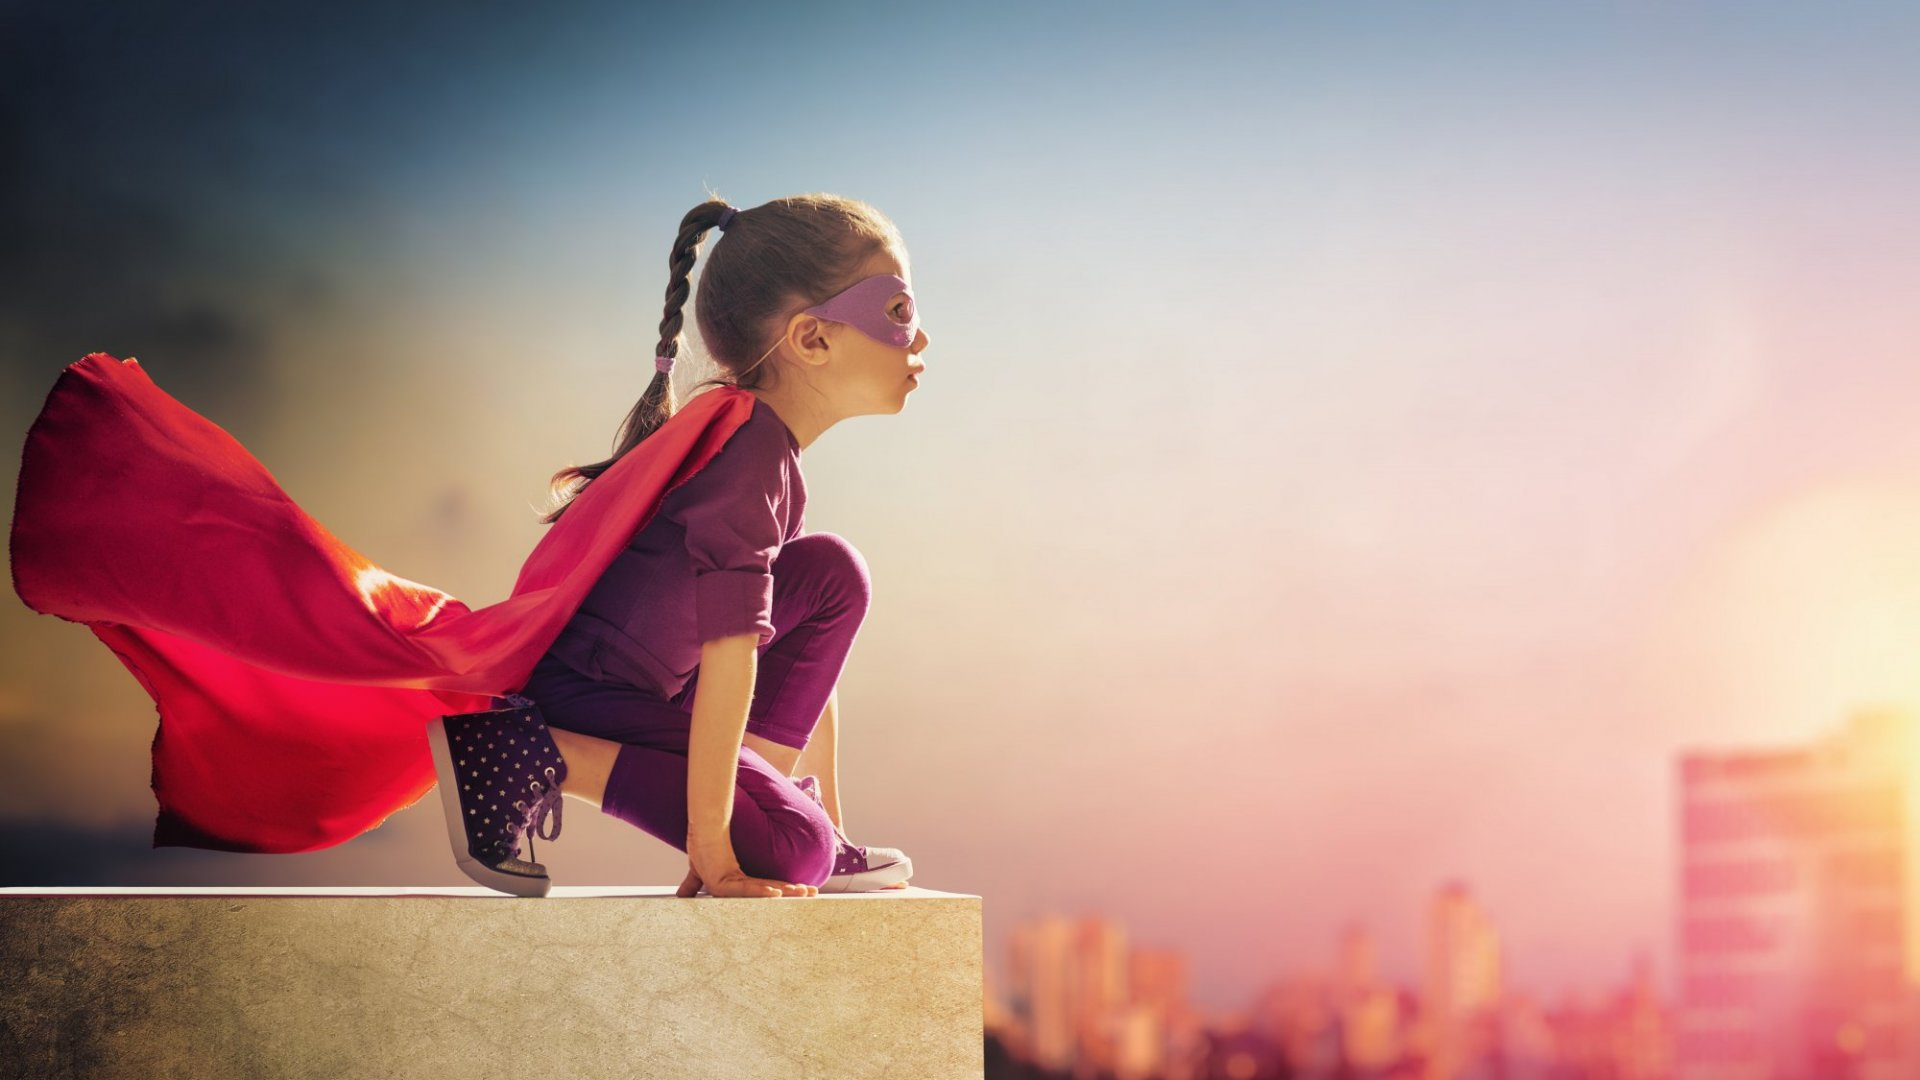 Become the Best You Can Be With These Top 27 Inspirational Quotes